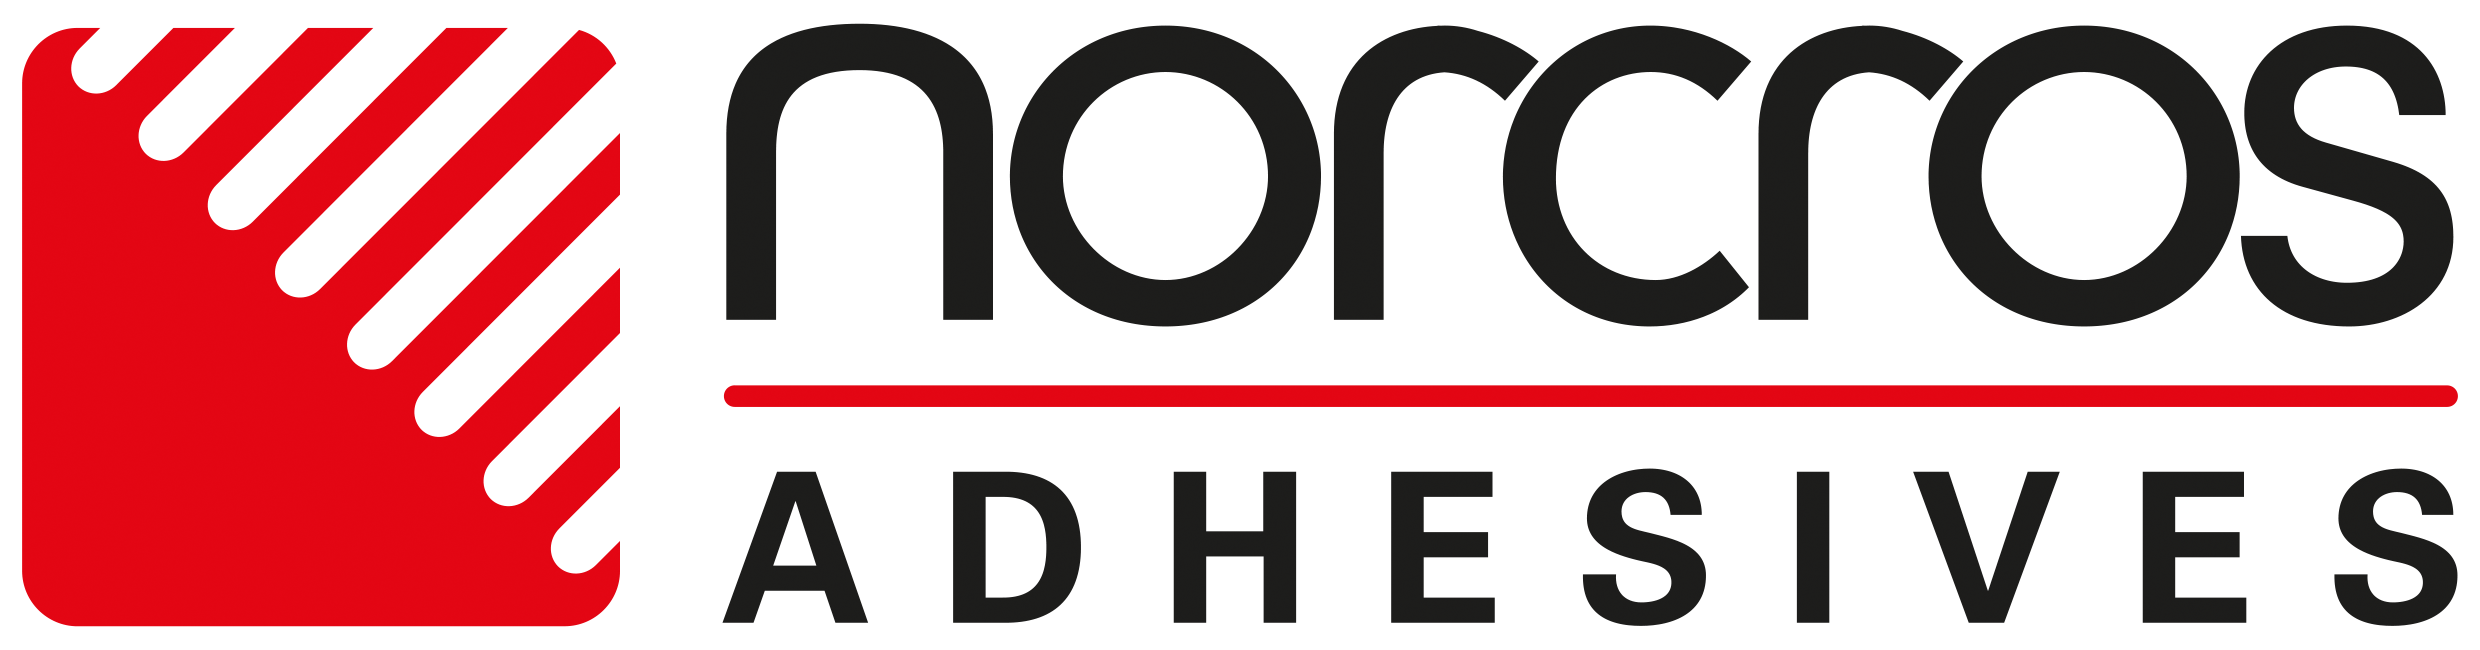 Linked logo for Norcros Adhesives